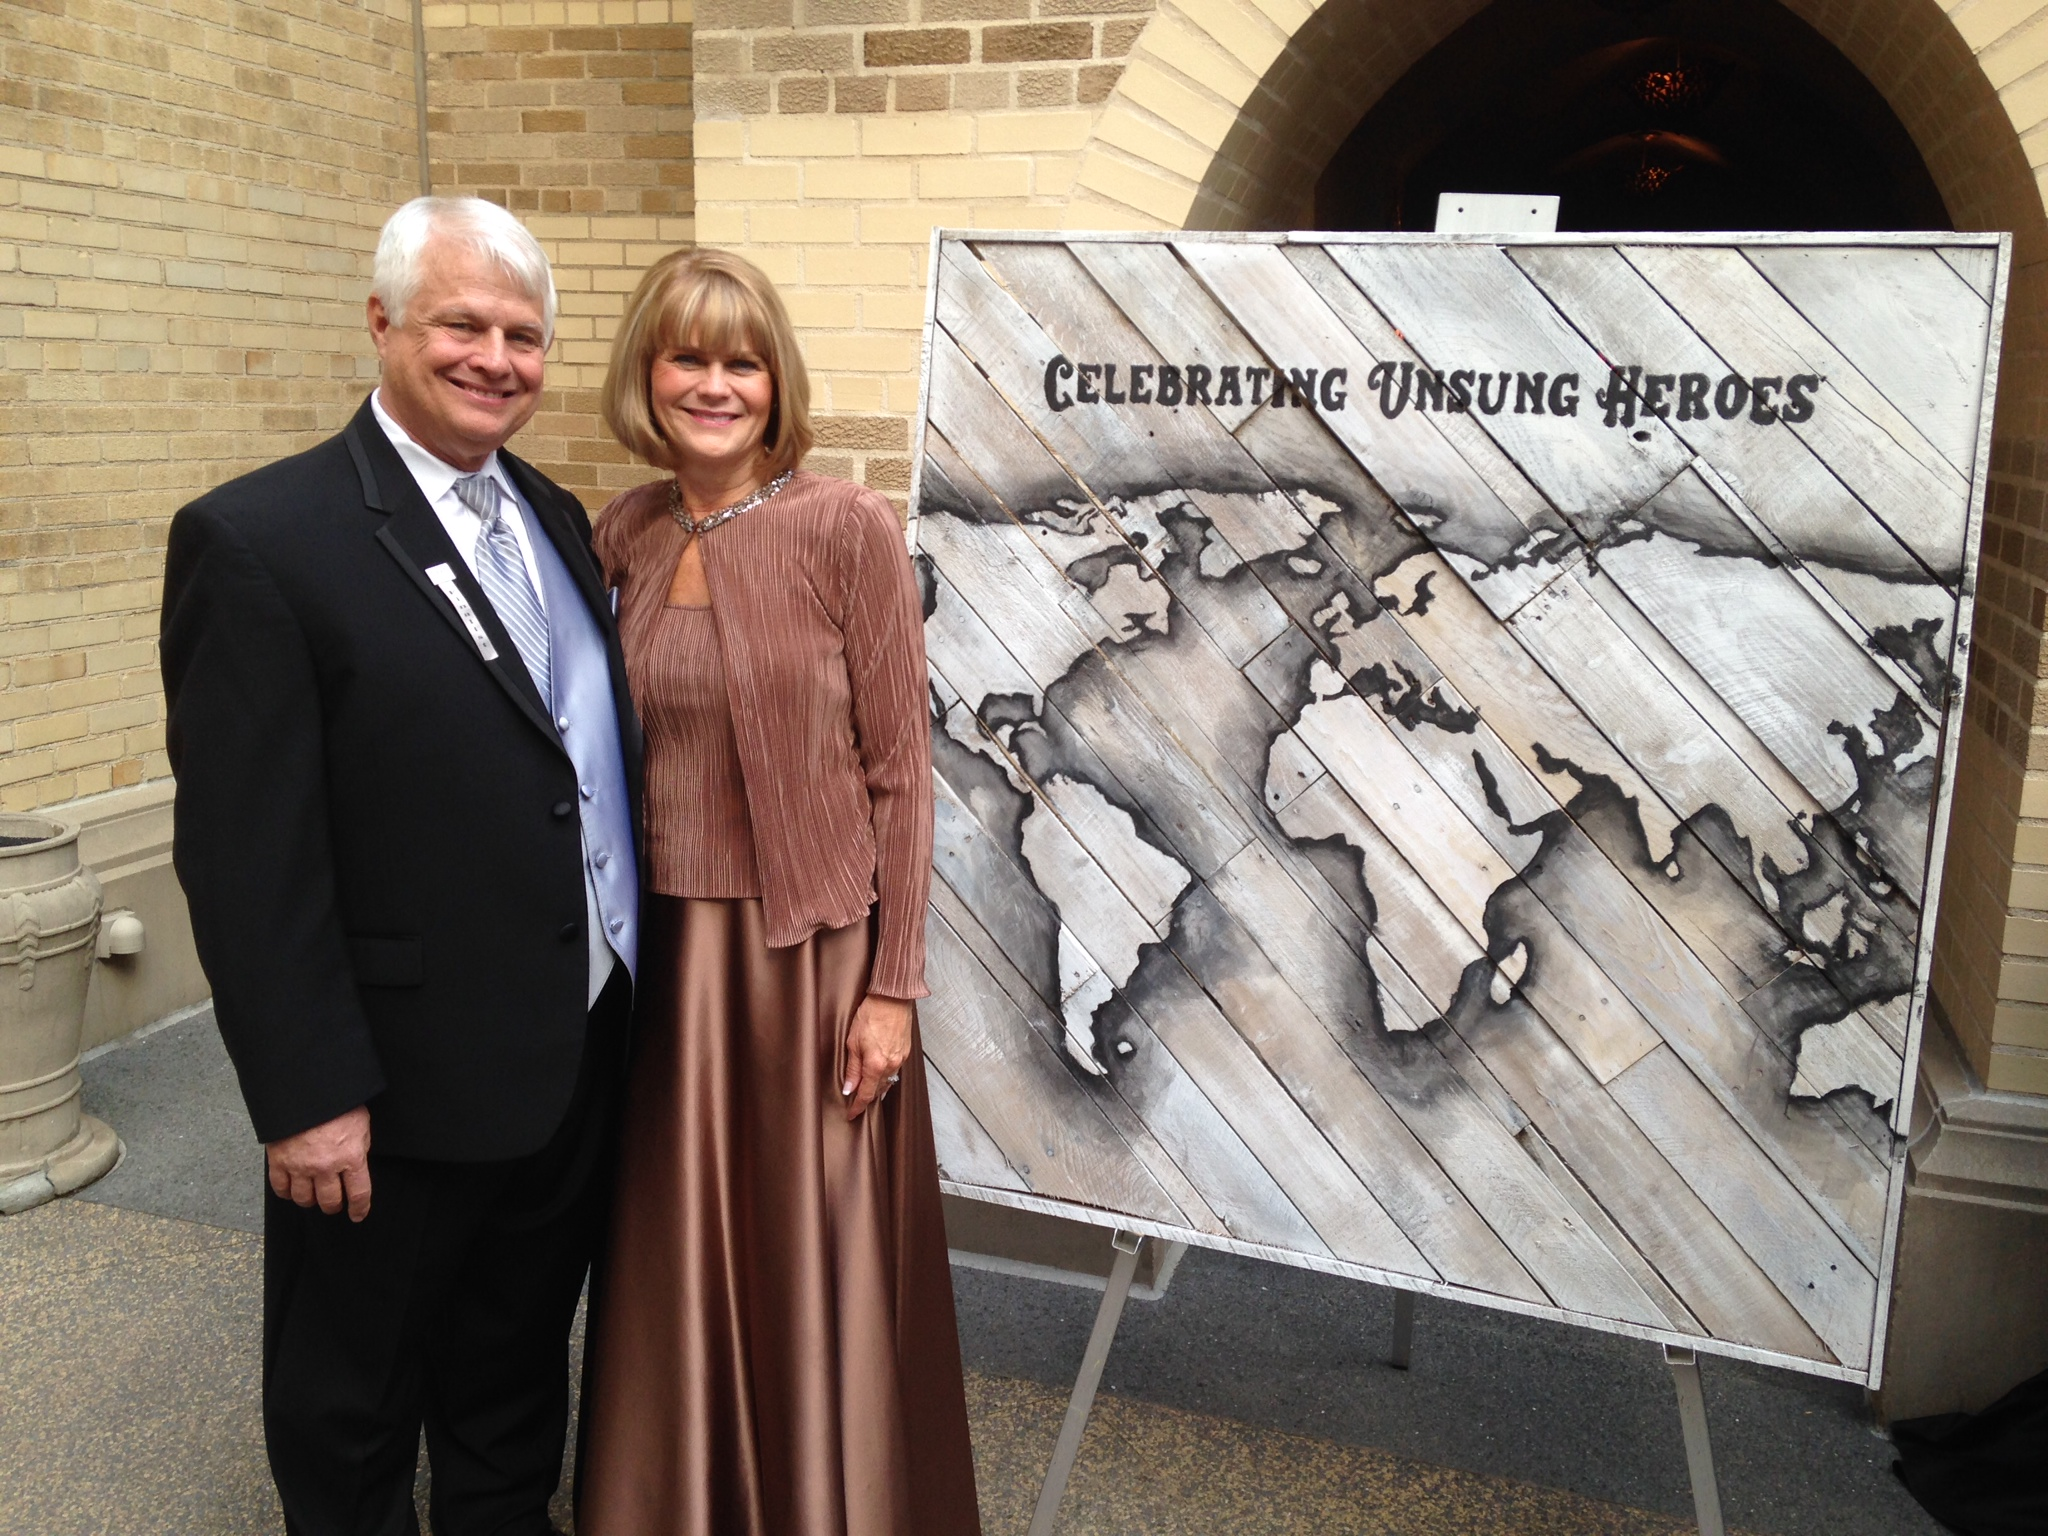 Crio International founders: President Dr. Ron Hesser and his wife, Janice.